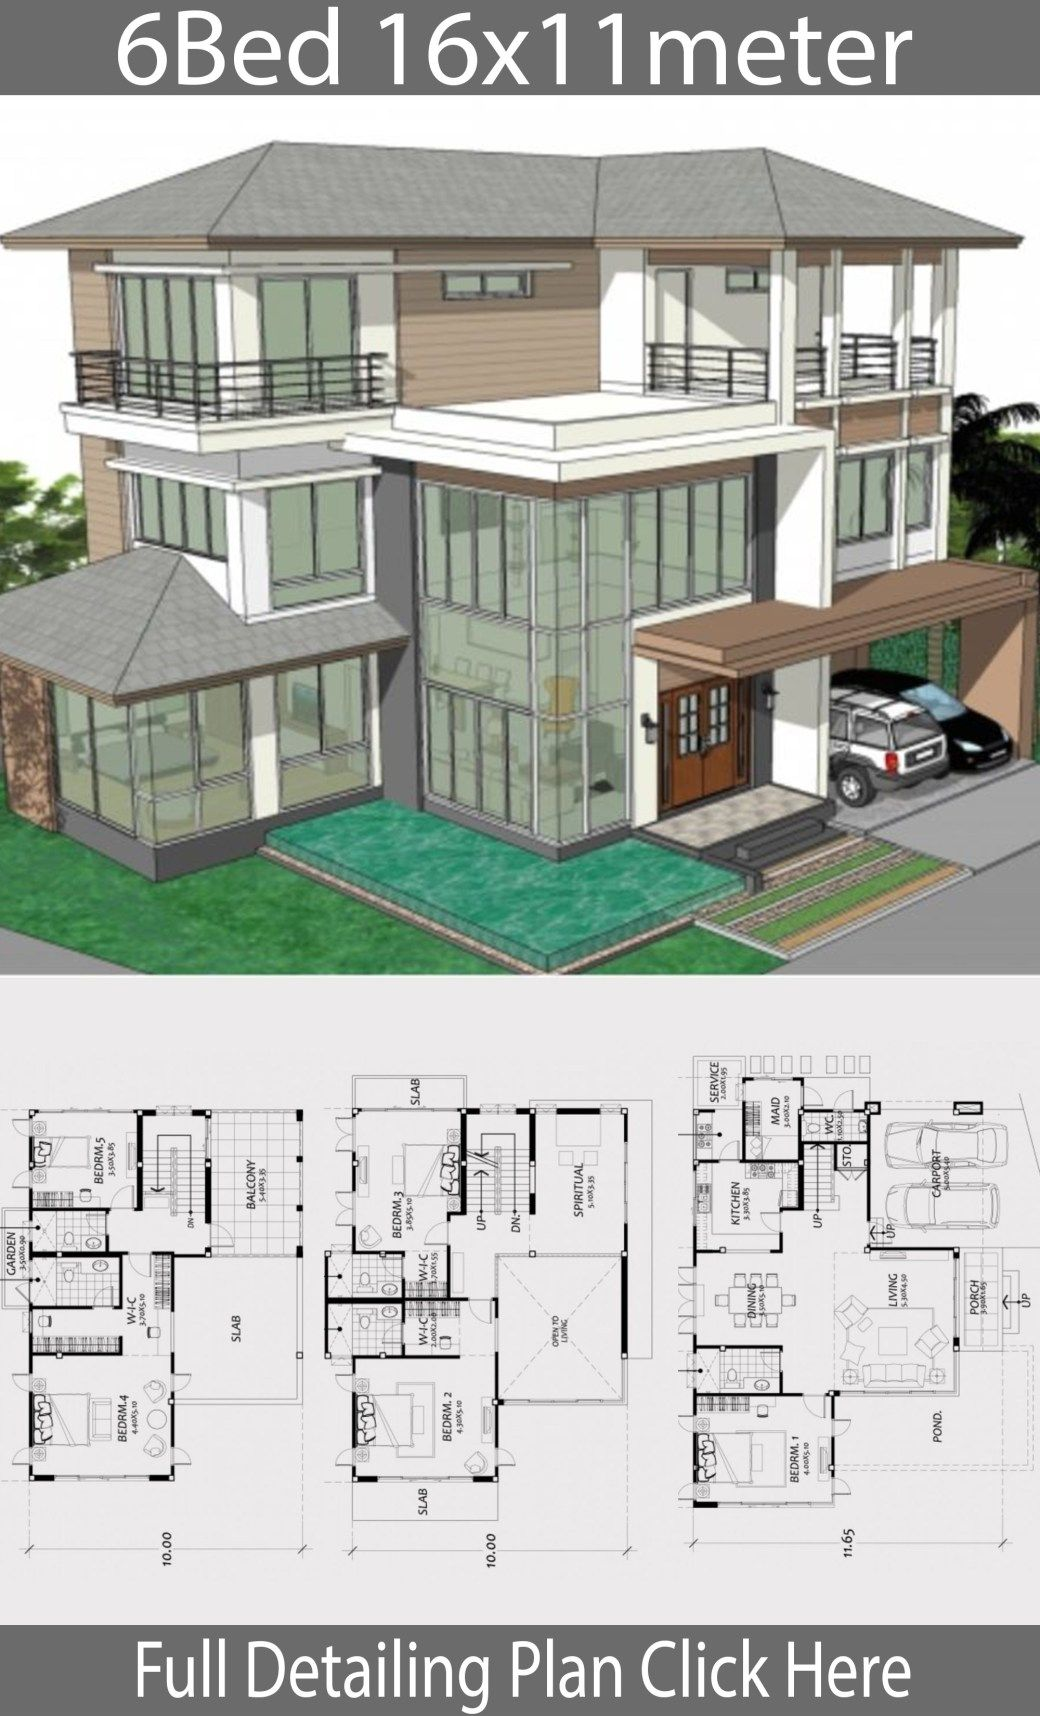 Home design plan 16x11m with 6 bedrooms - House Idea ...